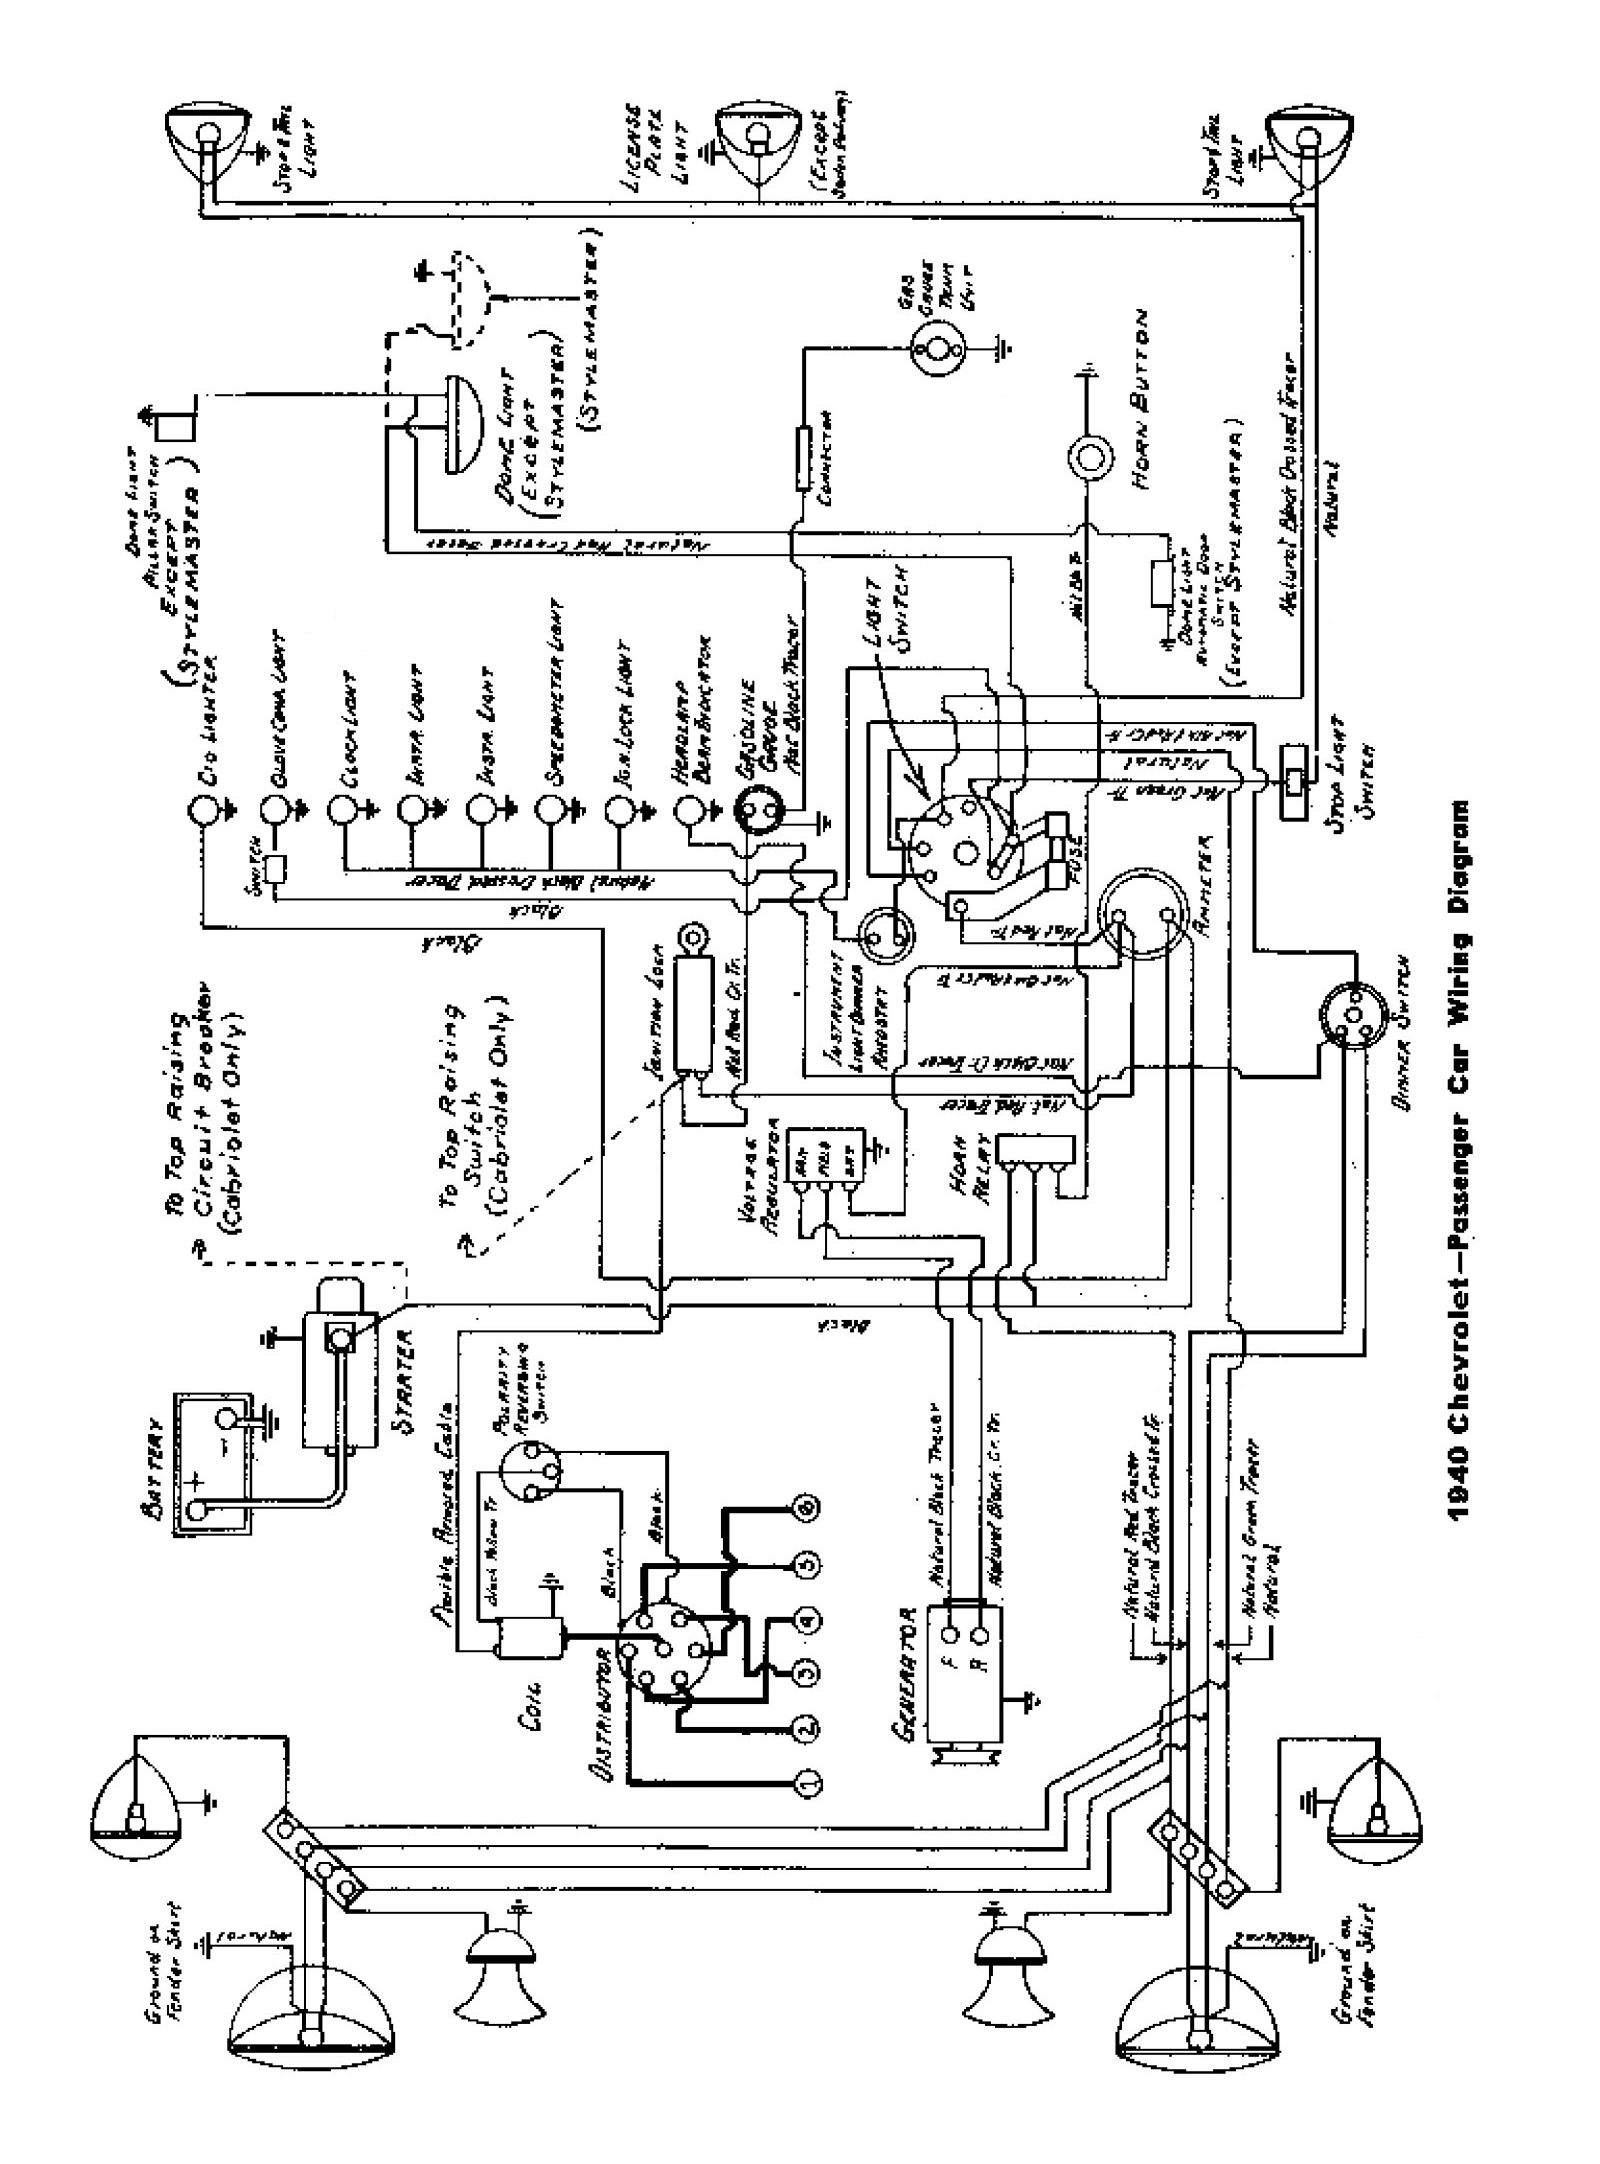 1951 Olds Wiring Diagram | Wiring Diagram Free Car Wiring Diagram Oldsmobile on free auto wiring schematic, free car repair manuals, free vehicle diagrams, free chilton diagrams, free car parts, electrical diagrams, free diagram templates, free schematic diagram, free auto diagrams, free home, free honda wiring diagram, free car schematics, free electronic schematics, free engine rebuilding diagrams, free car seats, free car diagnostic, free car tools, free car maintenance, free car engine diagrams, free toyota repair diagrams,